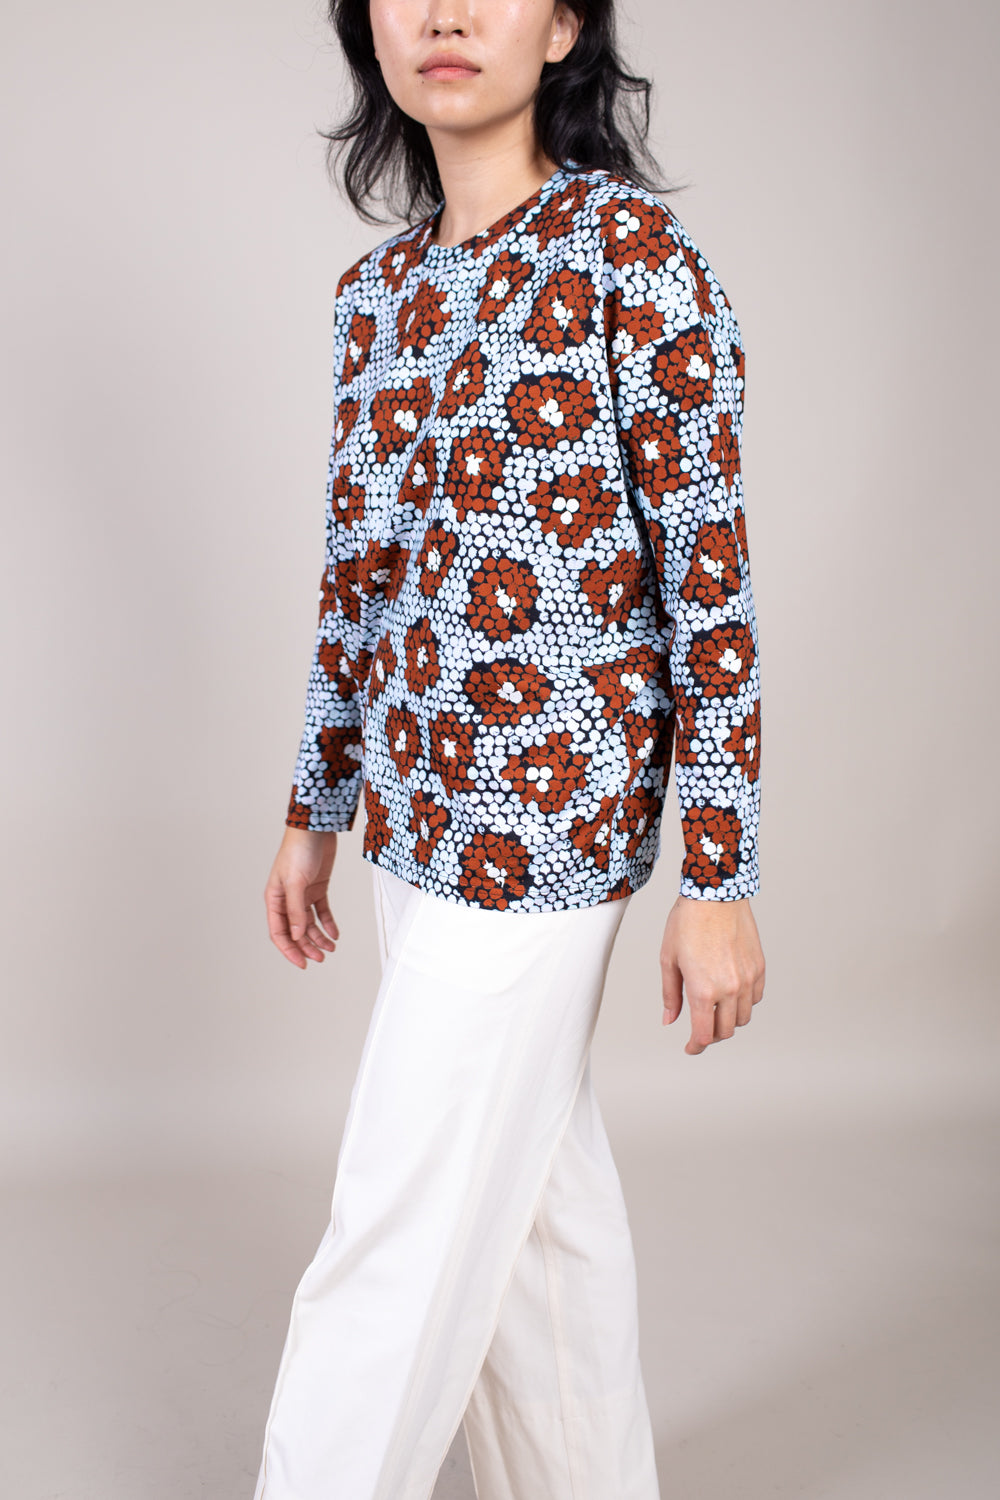 Turas Long Sleeve Shirt in Blue Daisy